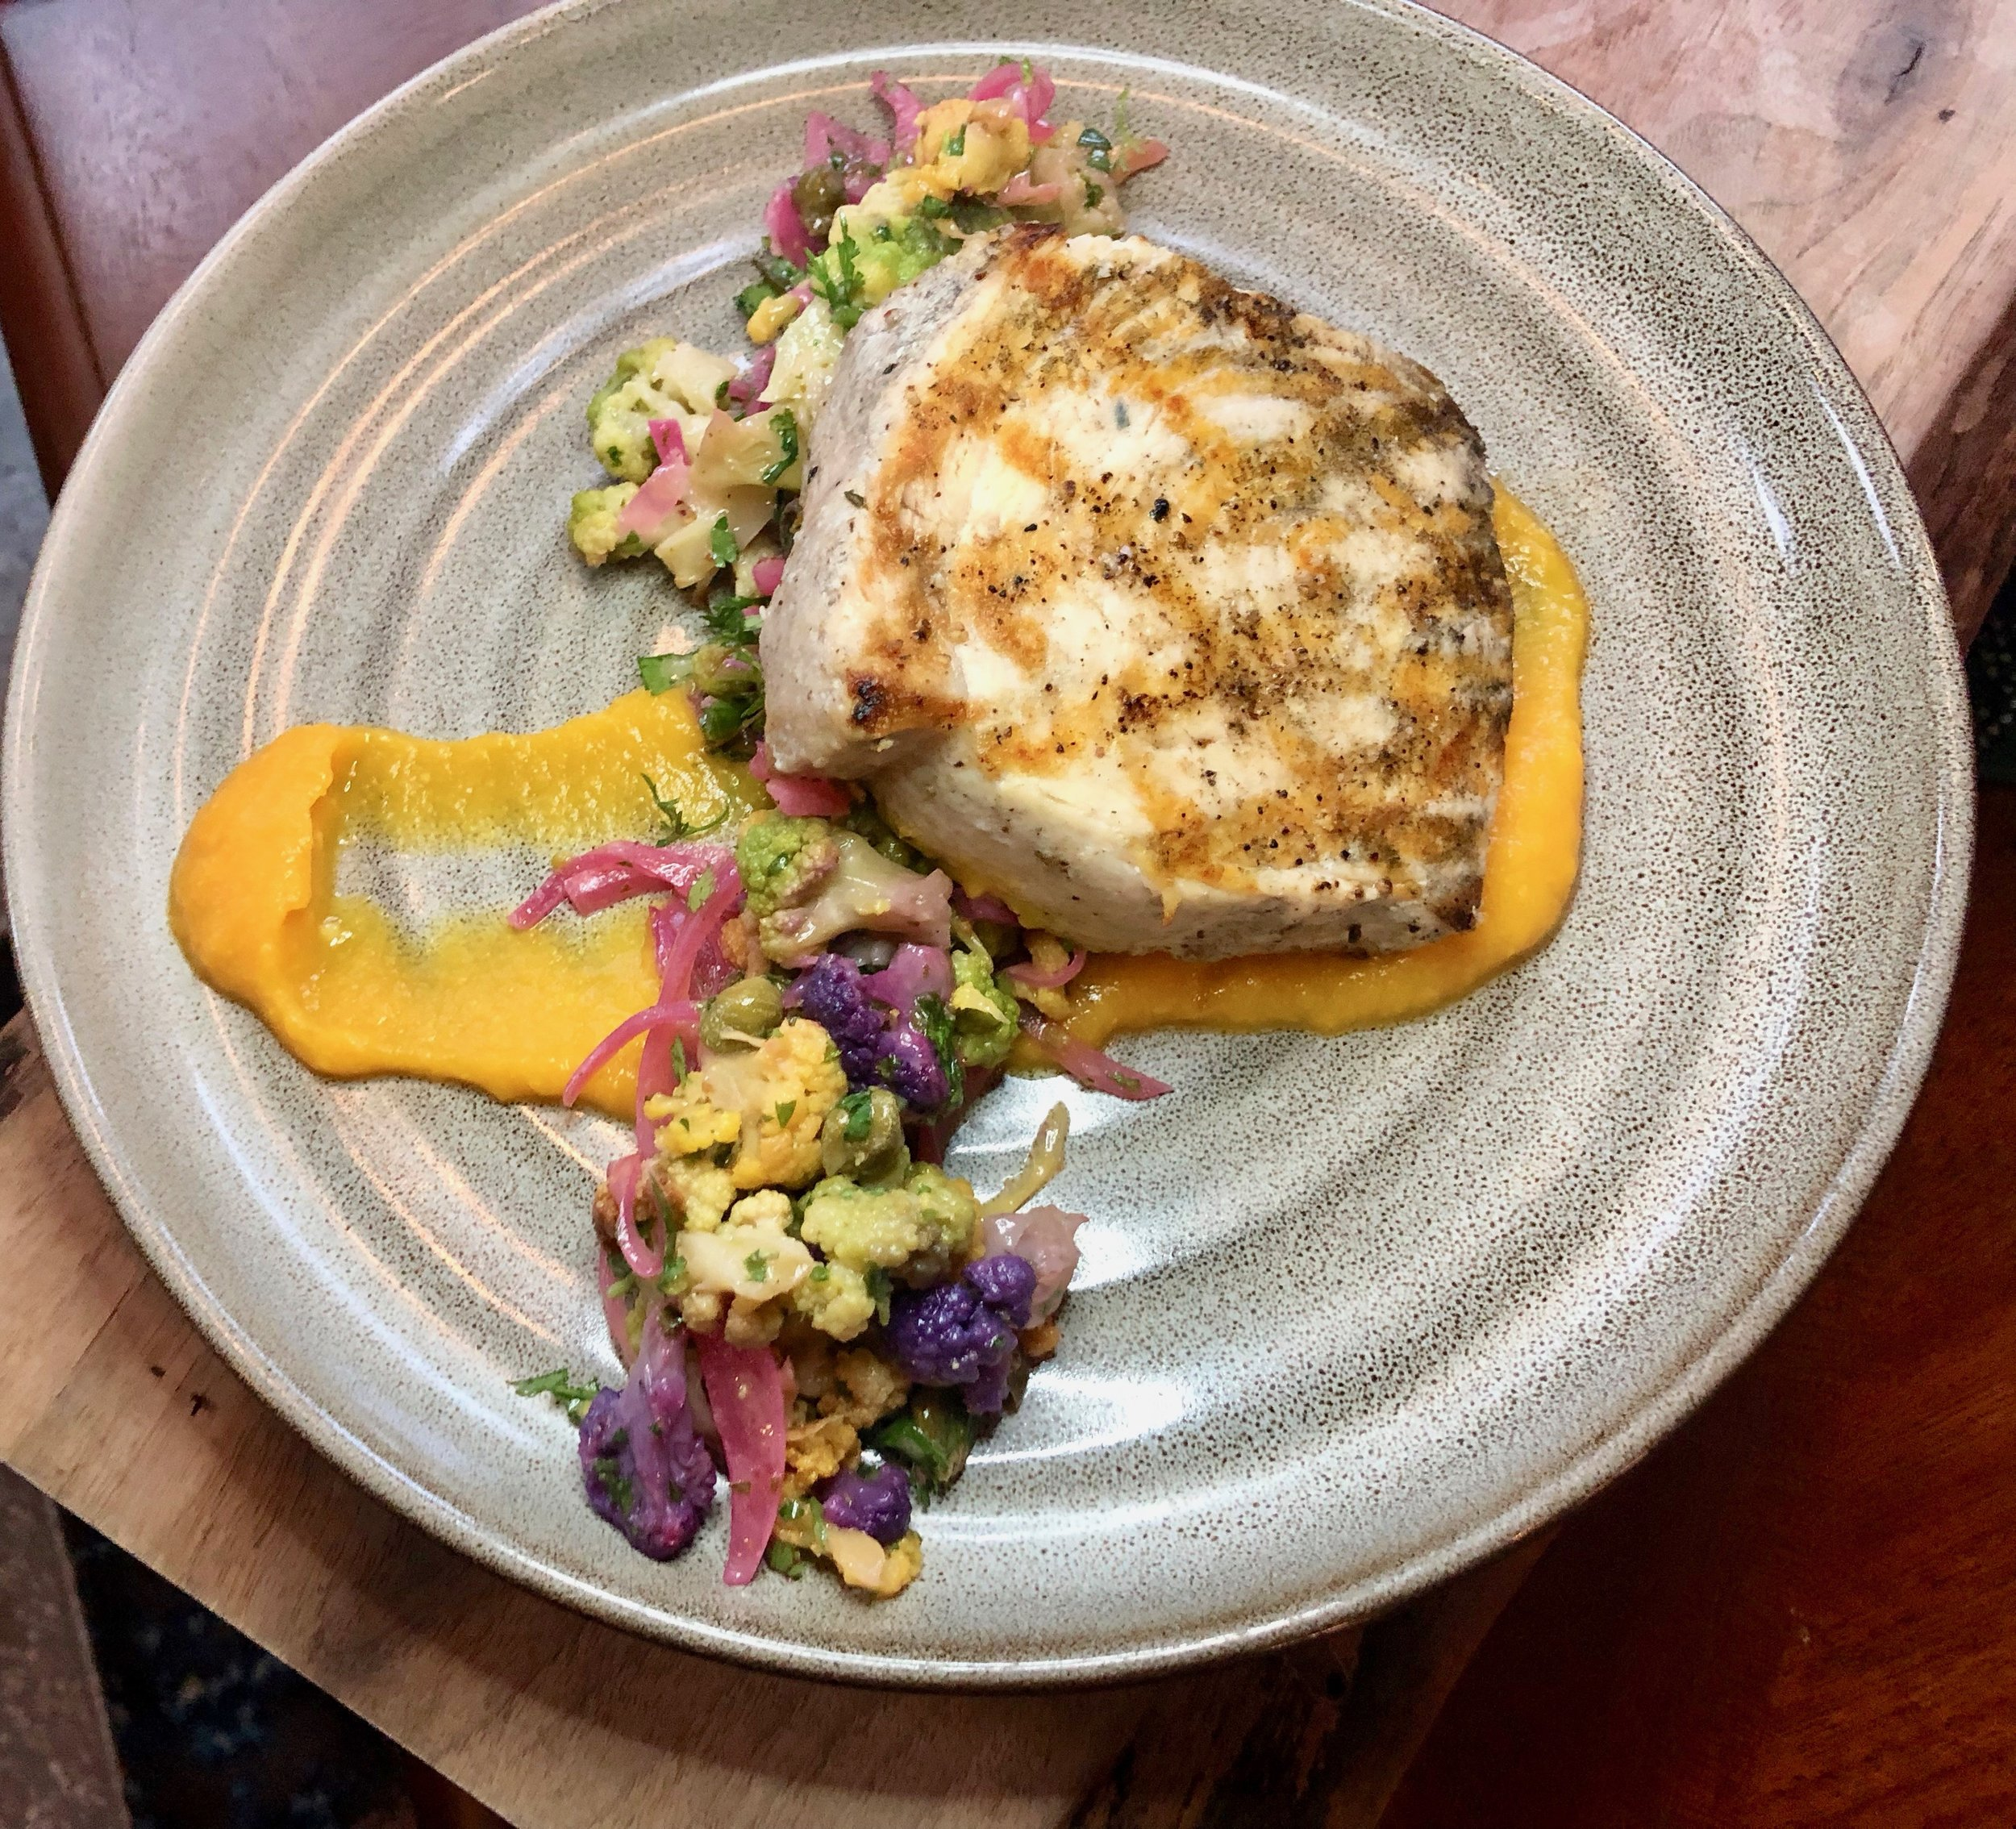 Reyes Mezcaleria – We lucked out having swordfish during our Orlando Magical Dining Month 2019 preview, but you prob can't go wrong. The Local Catch option is the day's white fish, pan-seared, with sweet corn puree and a rainbow cauliflower-caper-salsa.